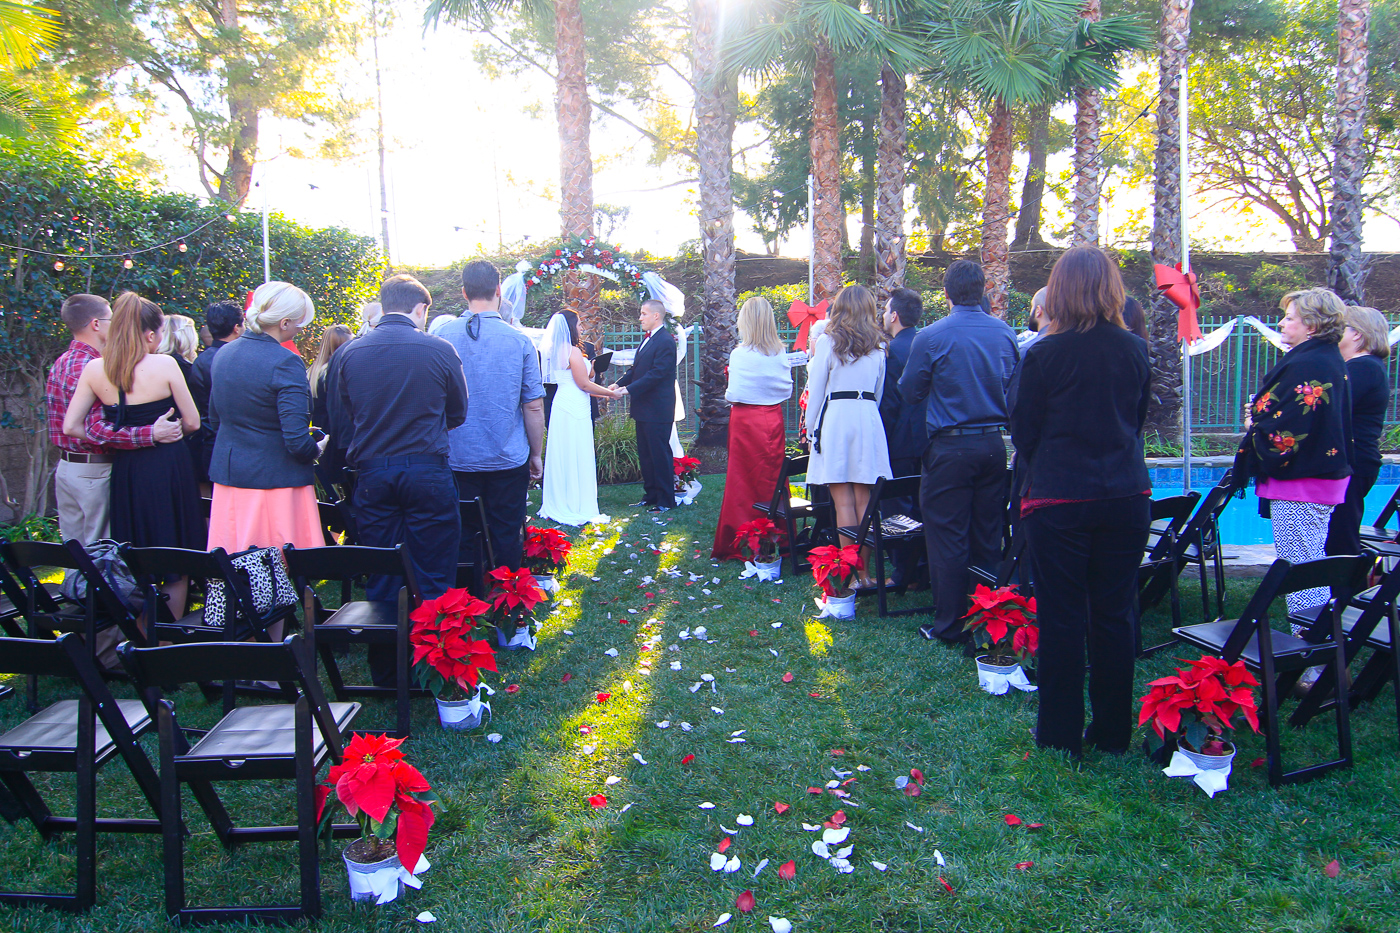 Beautiful Christmas themed backyard wedding ceremony